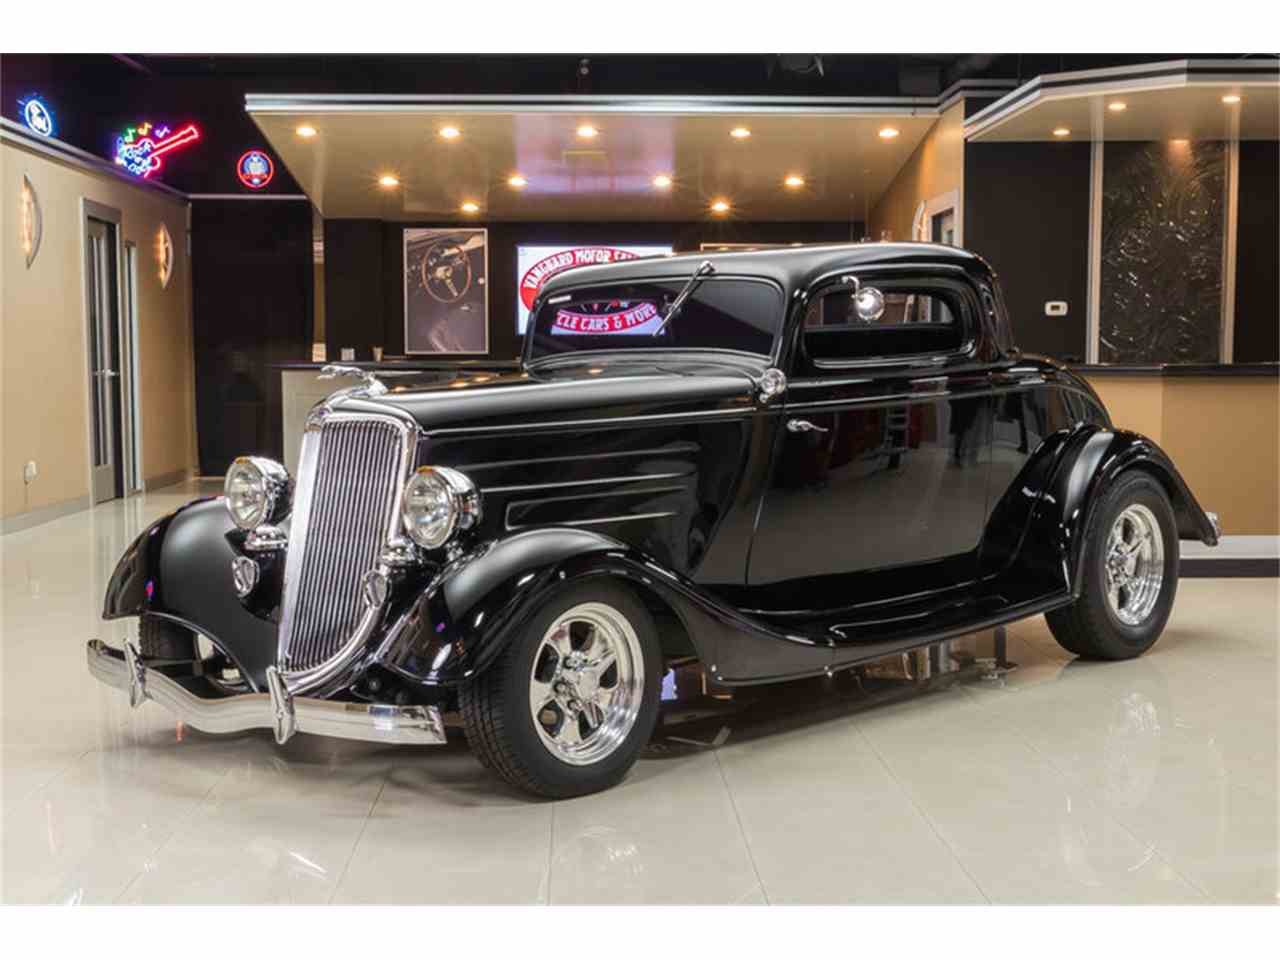 1934 ford 3 window coupe street rod for sale classiccars for 1934 ford three window coupe